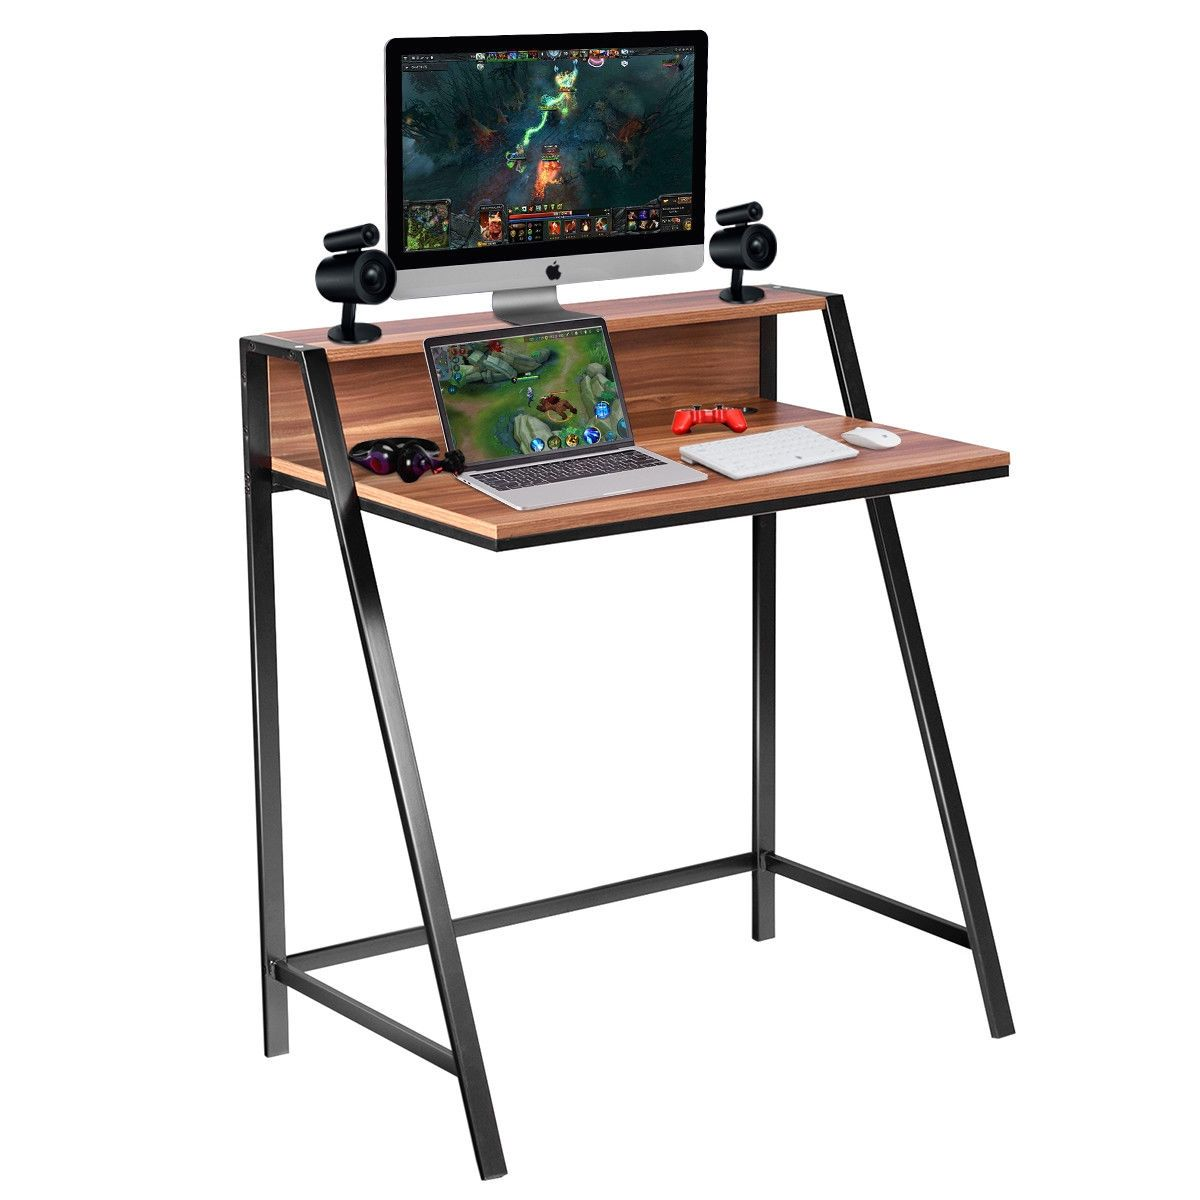 2 Tier Home Office Study Workstation Computer Desk In 2020